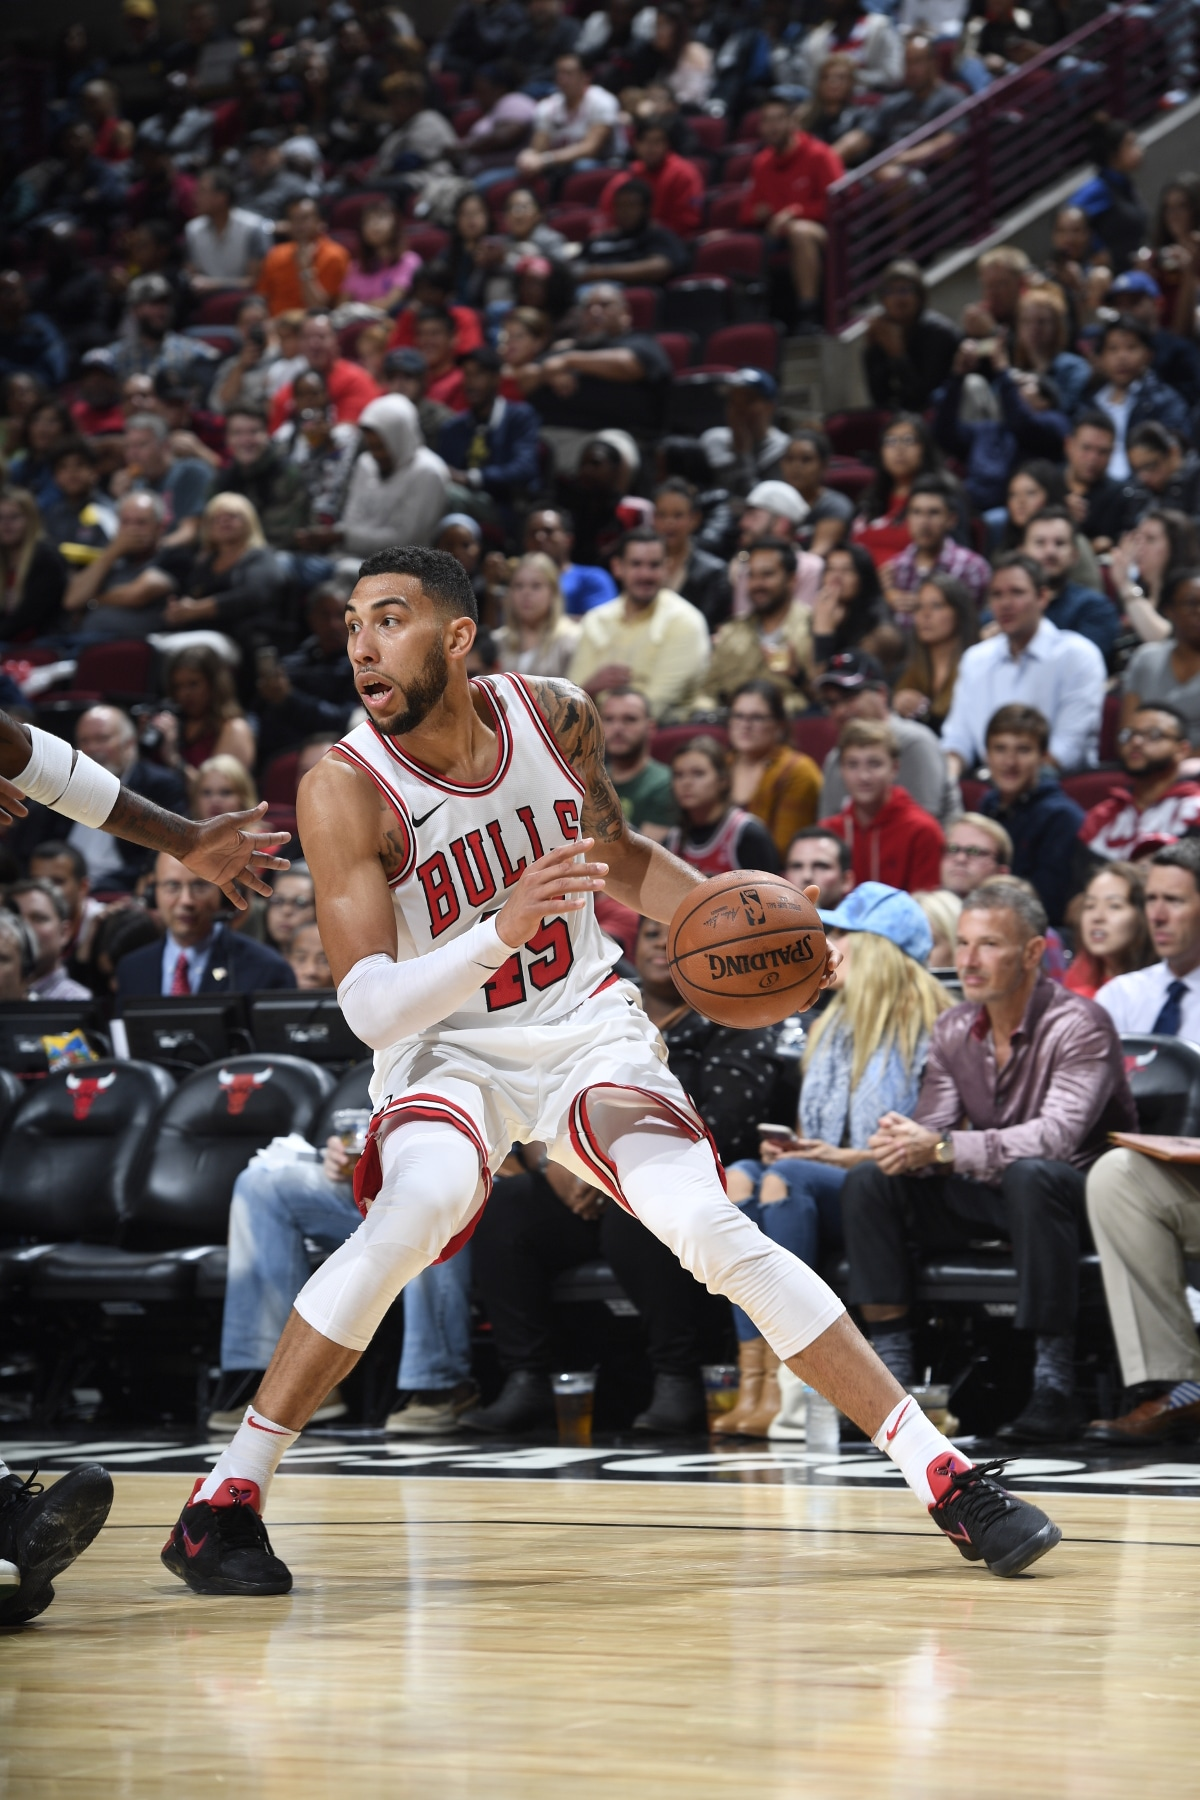 Denzel Valentine dribbling against players of the Milwaukee Bucks, October 6, 2017 at the United Center.